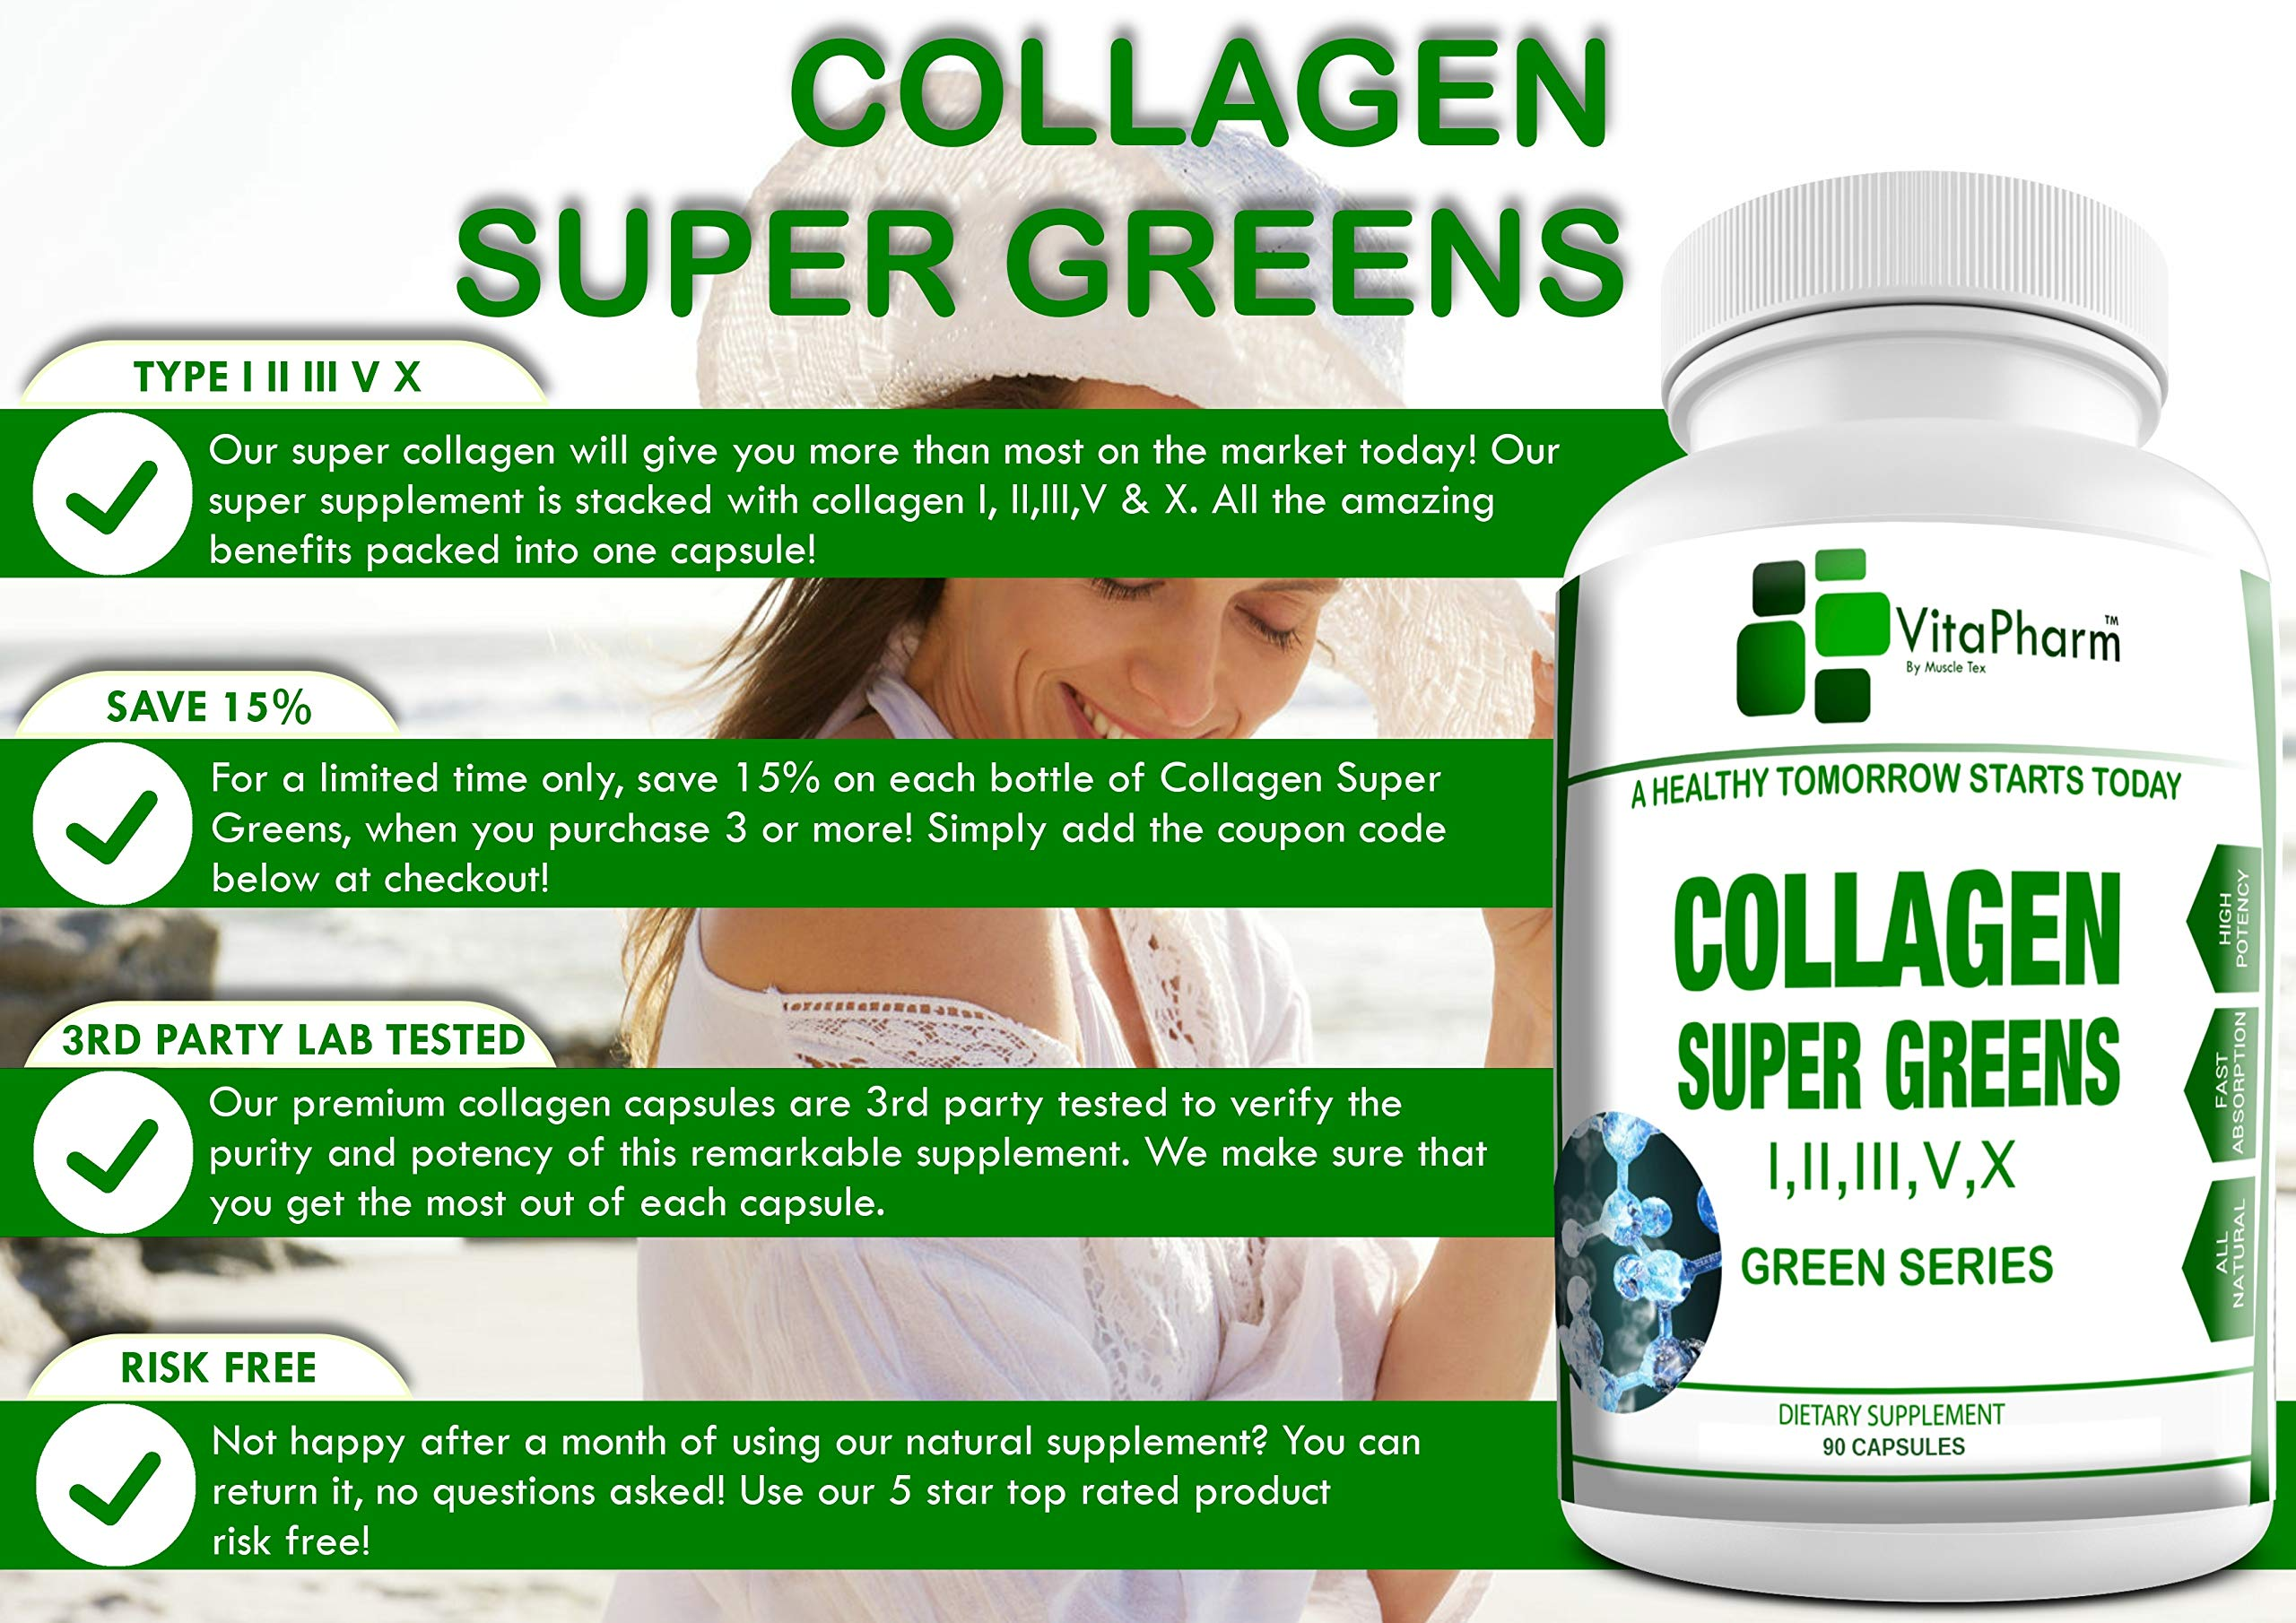 Multi Collagen SUPERGREENS by VitaPharm Nutrition | Types I, II, III, V & X Peptides with Bio-Availability Enhancer | Blend for Anti-Aging, Hair, Skin, Nails and Joints | 90 Capsules